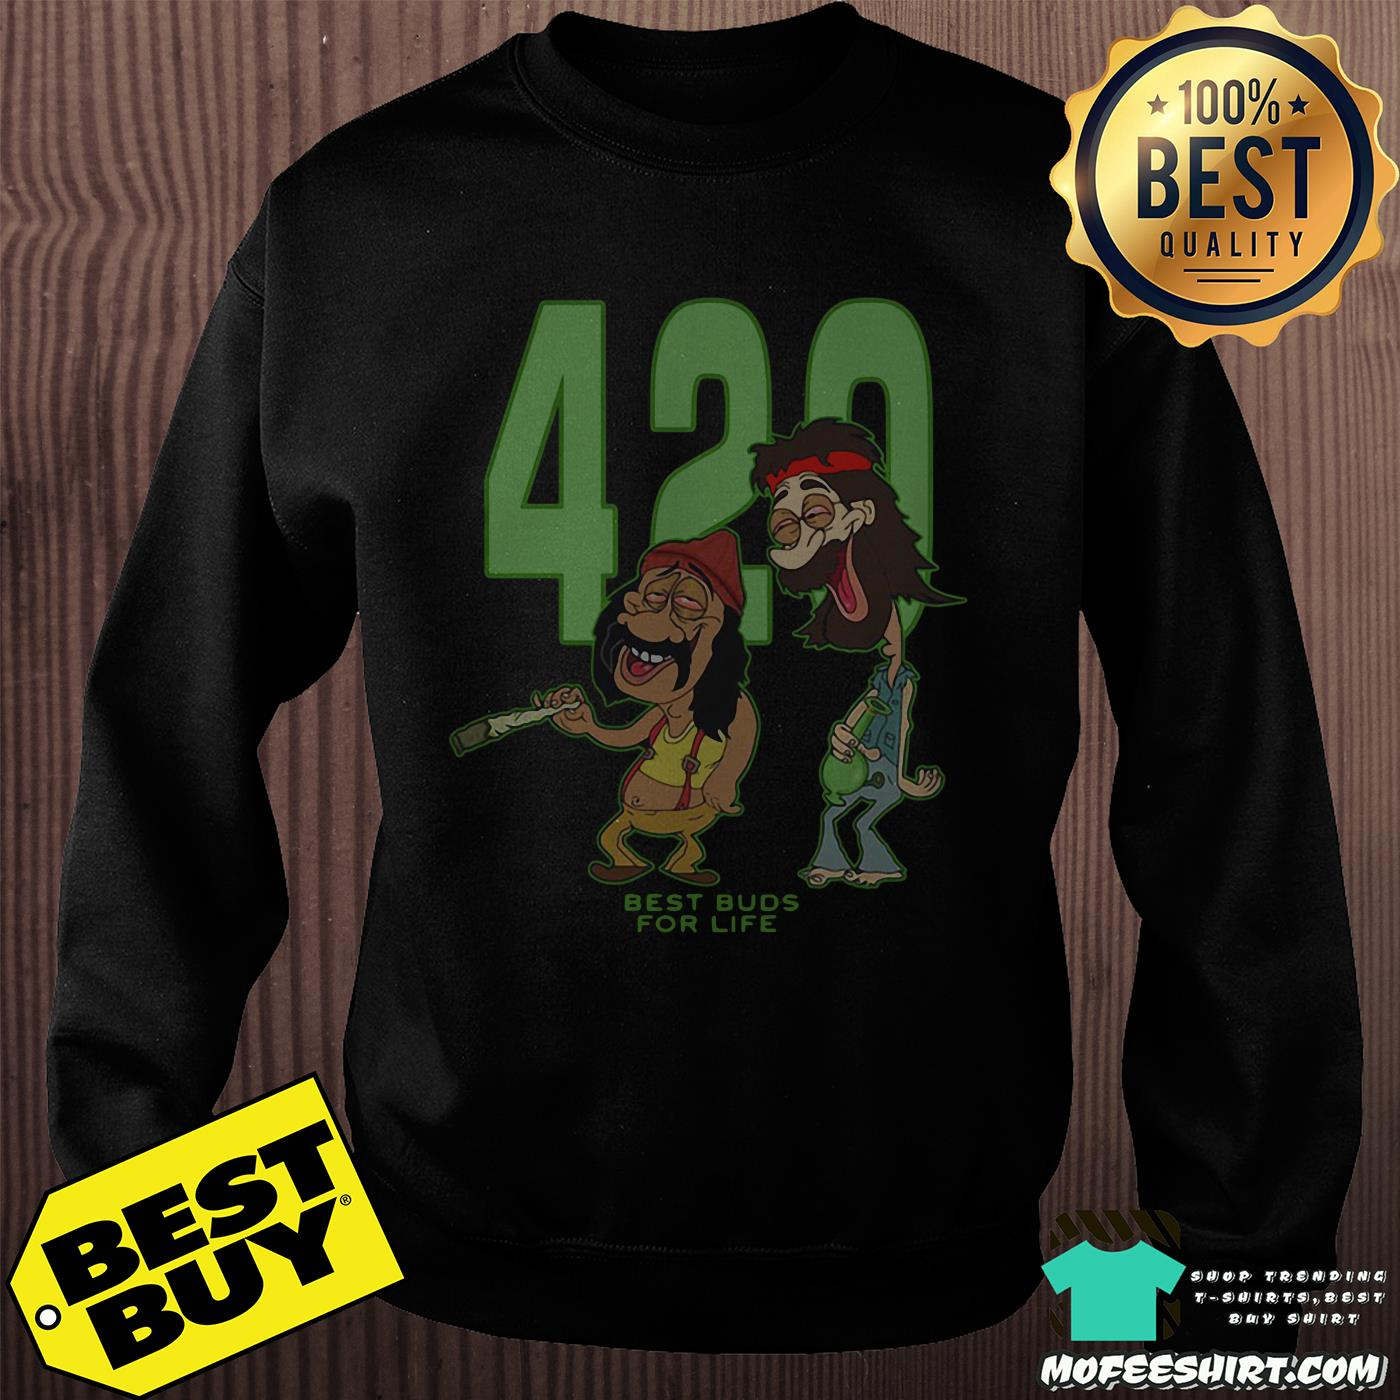 420 best buds for life sweatshirt - 420 Best Buds For Life Shirt